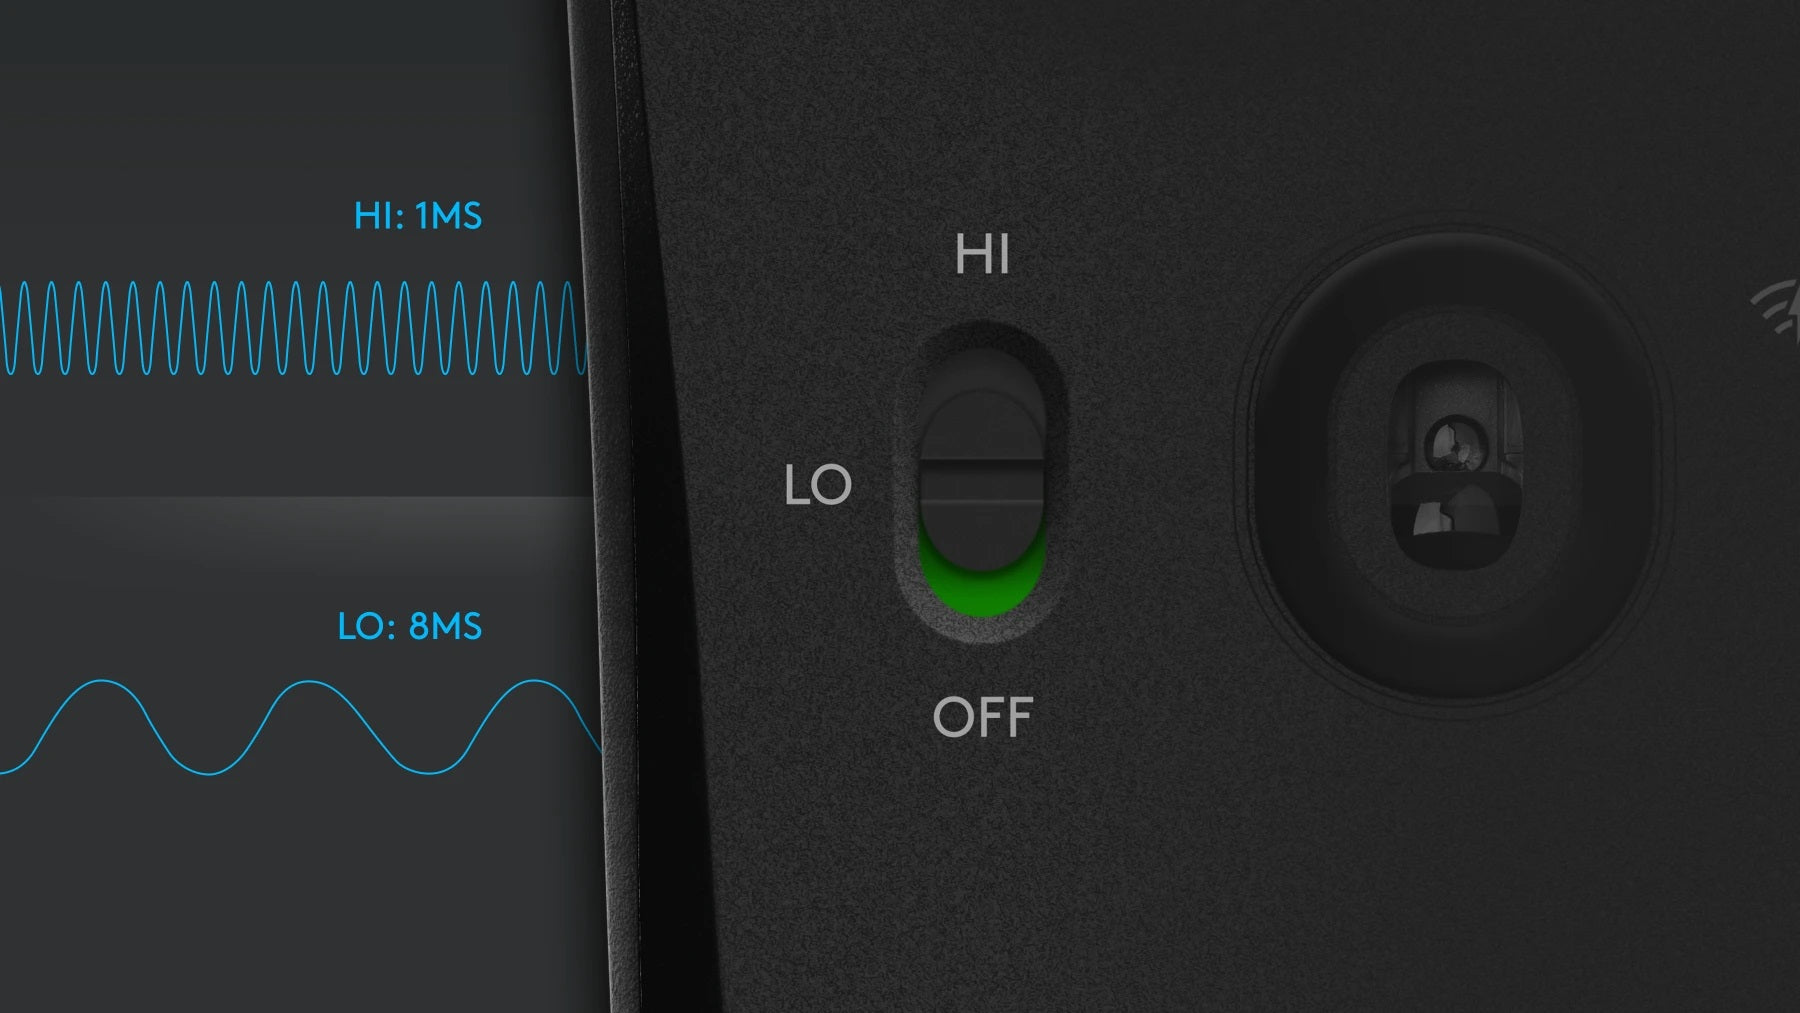 ADVANCED POWER MANAGEMENT - Quickly switch between HI and LO modes with the flick of a switch. In HI mode, G603 delivers peak performance with LIGHTSPEED 1ms report rate and up to 500 hours of non-stop gaming. When not gaming, simply switch to LO mode and extend battery life. LO mode reports at 8 ms for up to 18 months of use with 2 AA batteries.